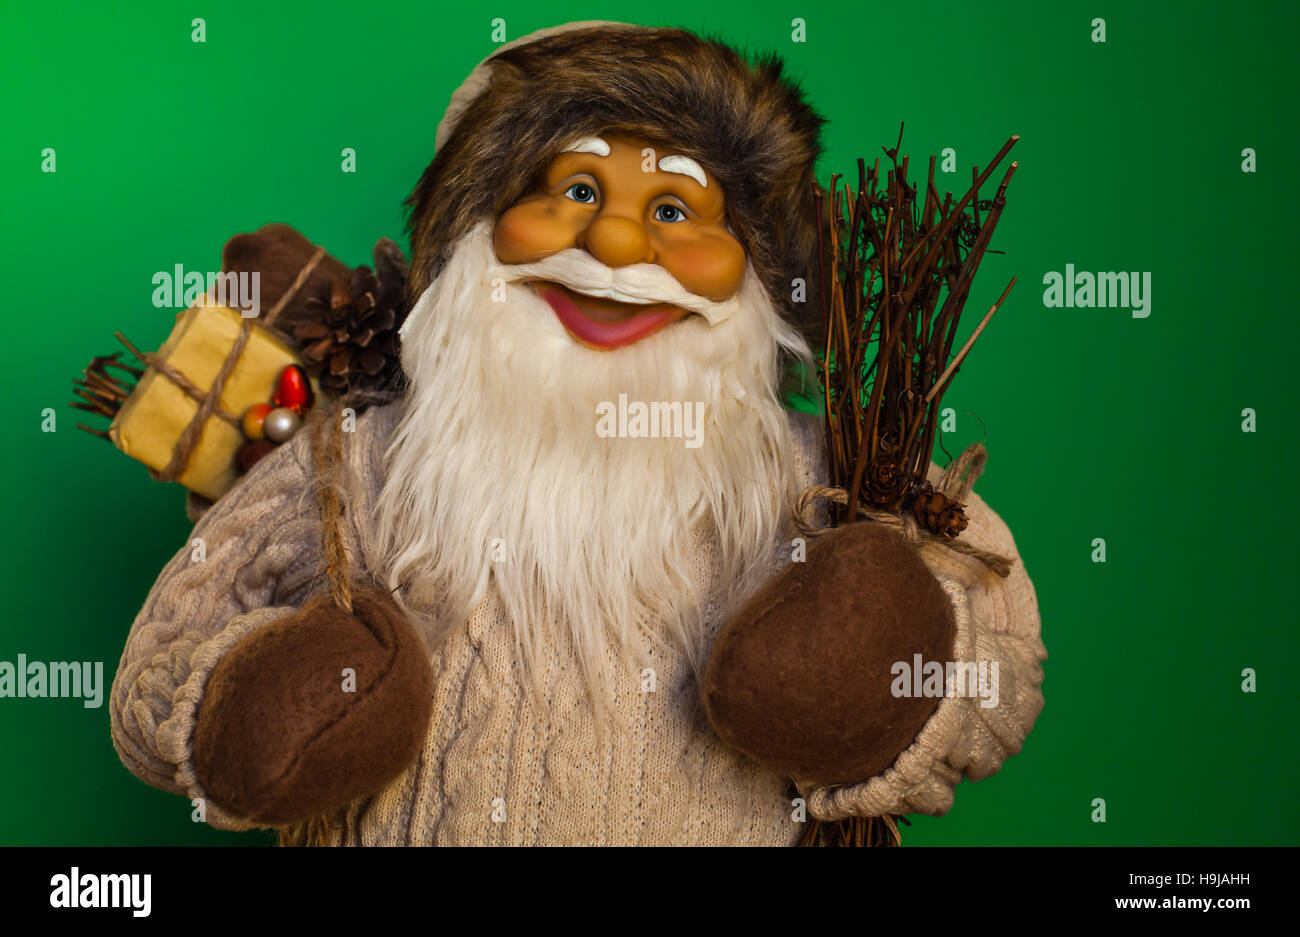 Santa Claus upper body close up with green background. - Stock Image